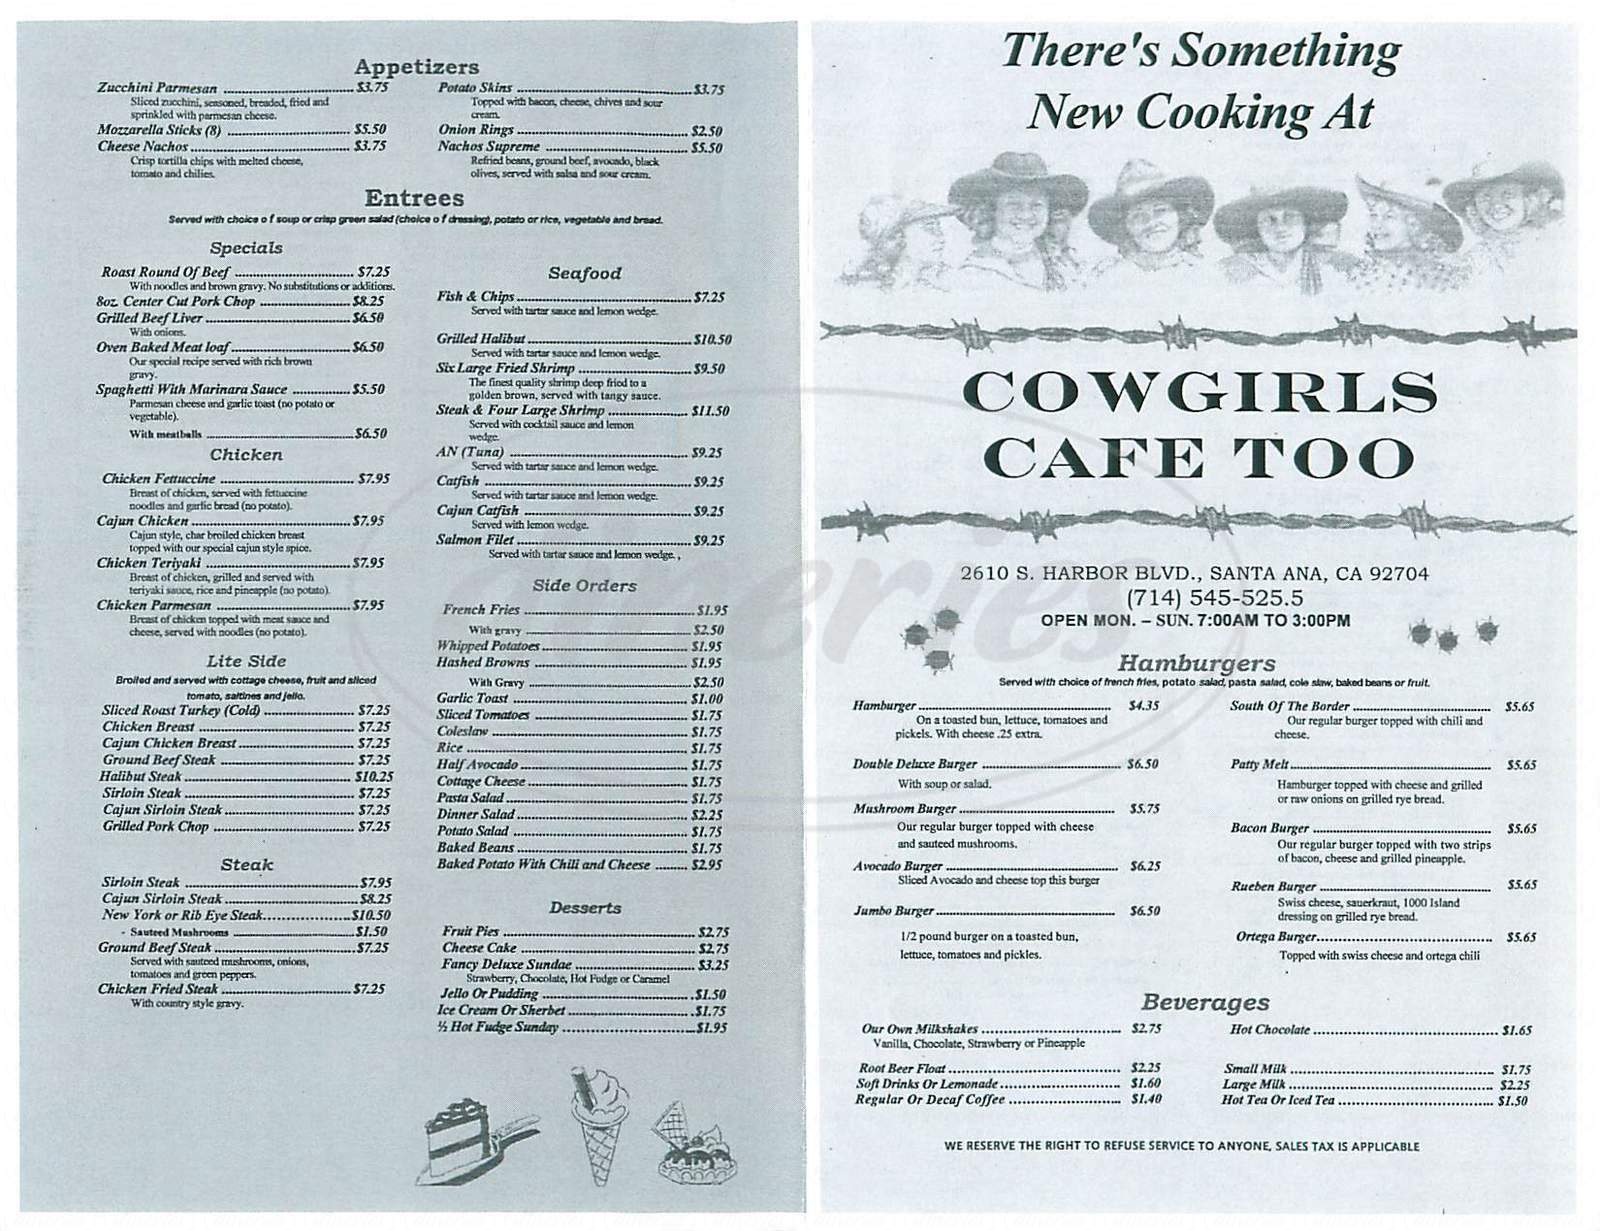 menu for Cowgirls Cafe Too